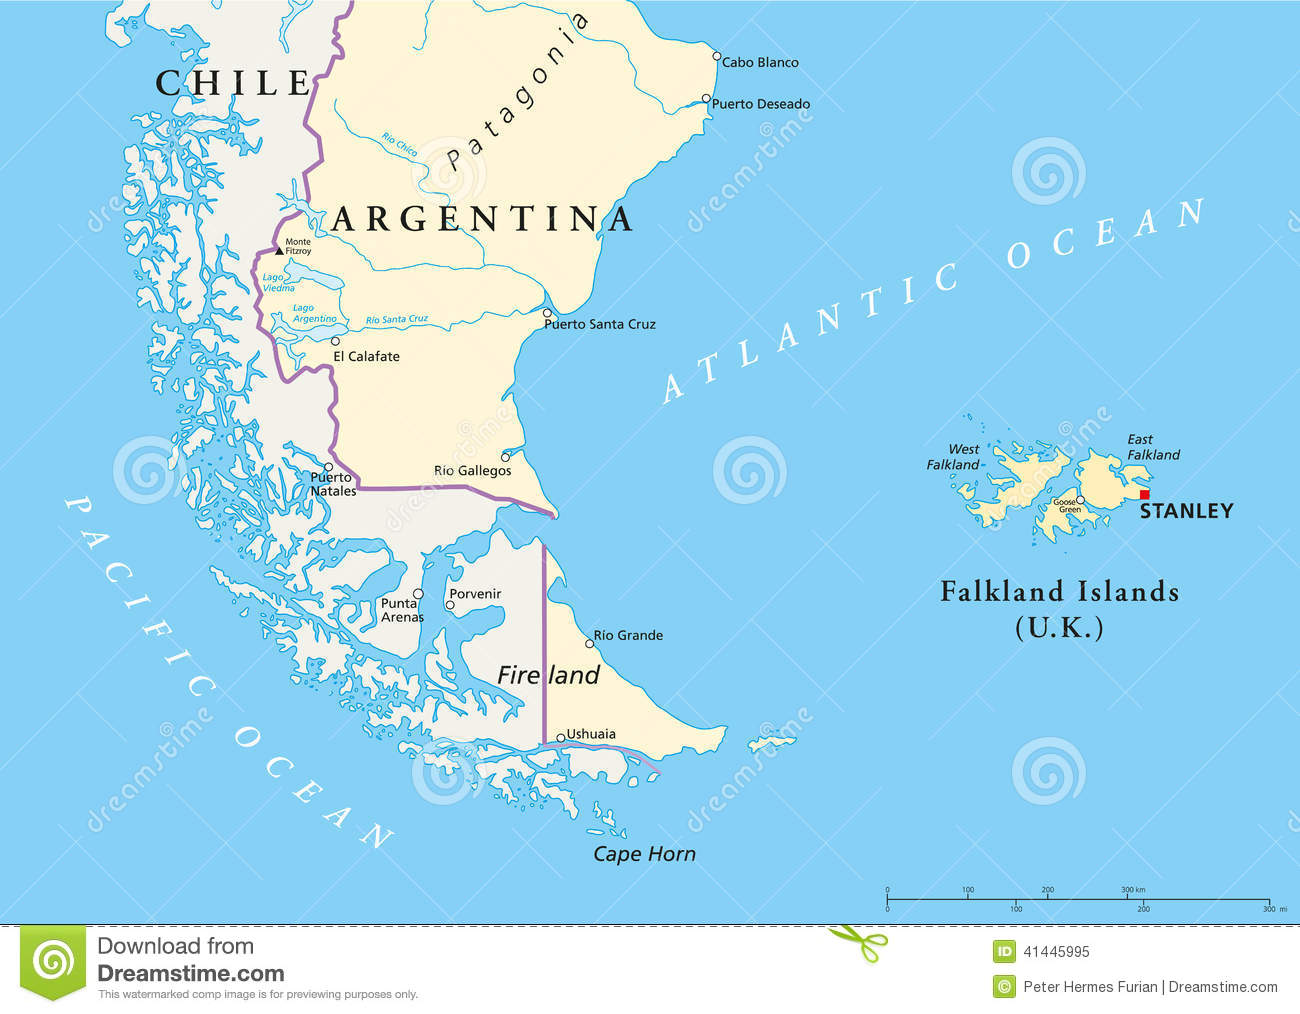 Fitzroy South falkland Islands City Falkland Islands Policikal Map